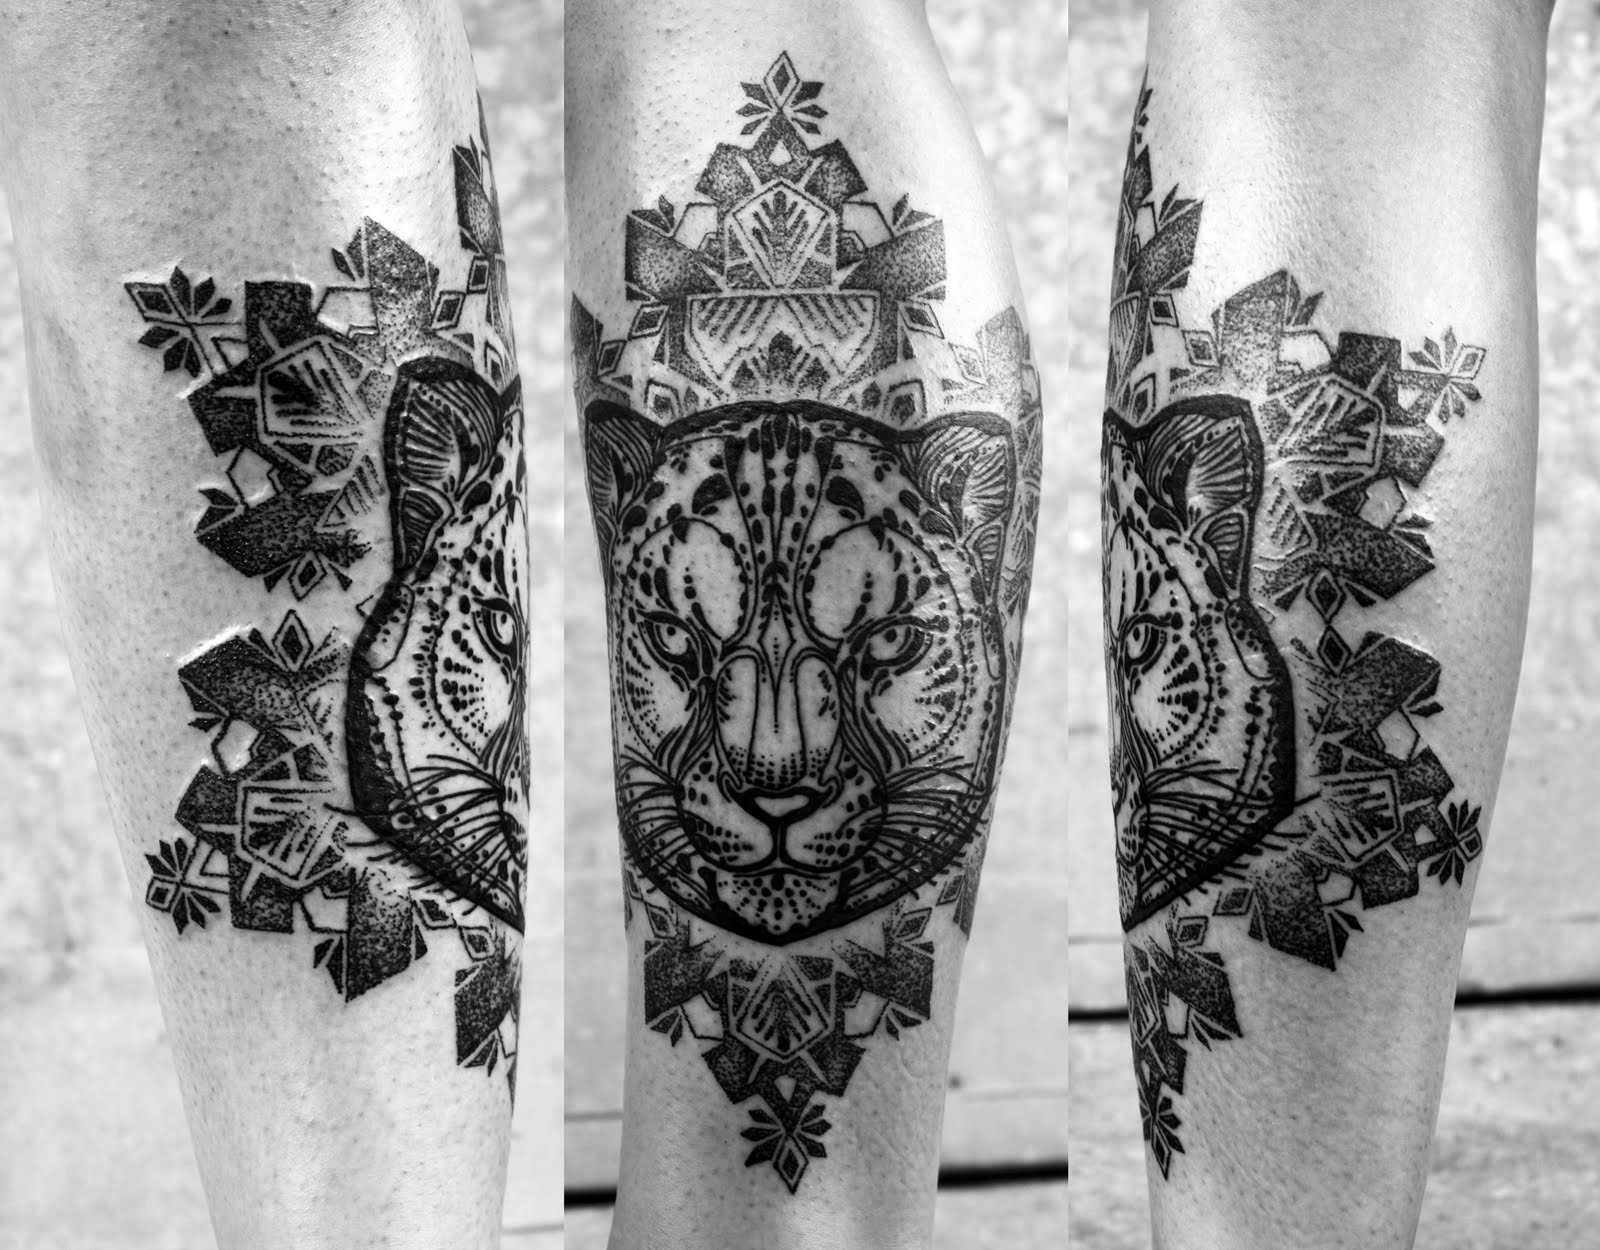 A tattoo of a snow leopard by David Hale with spiritual mandala patterns